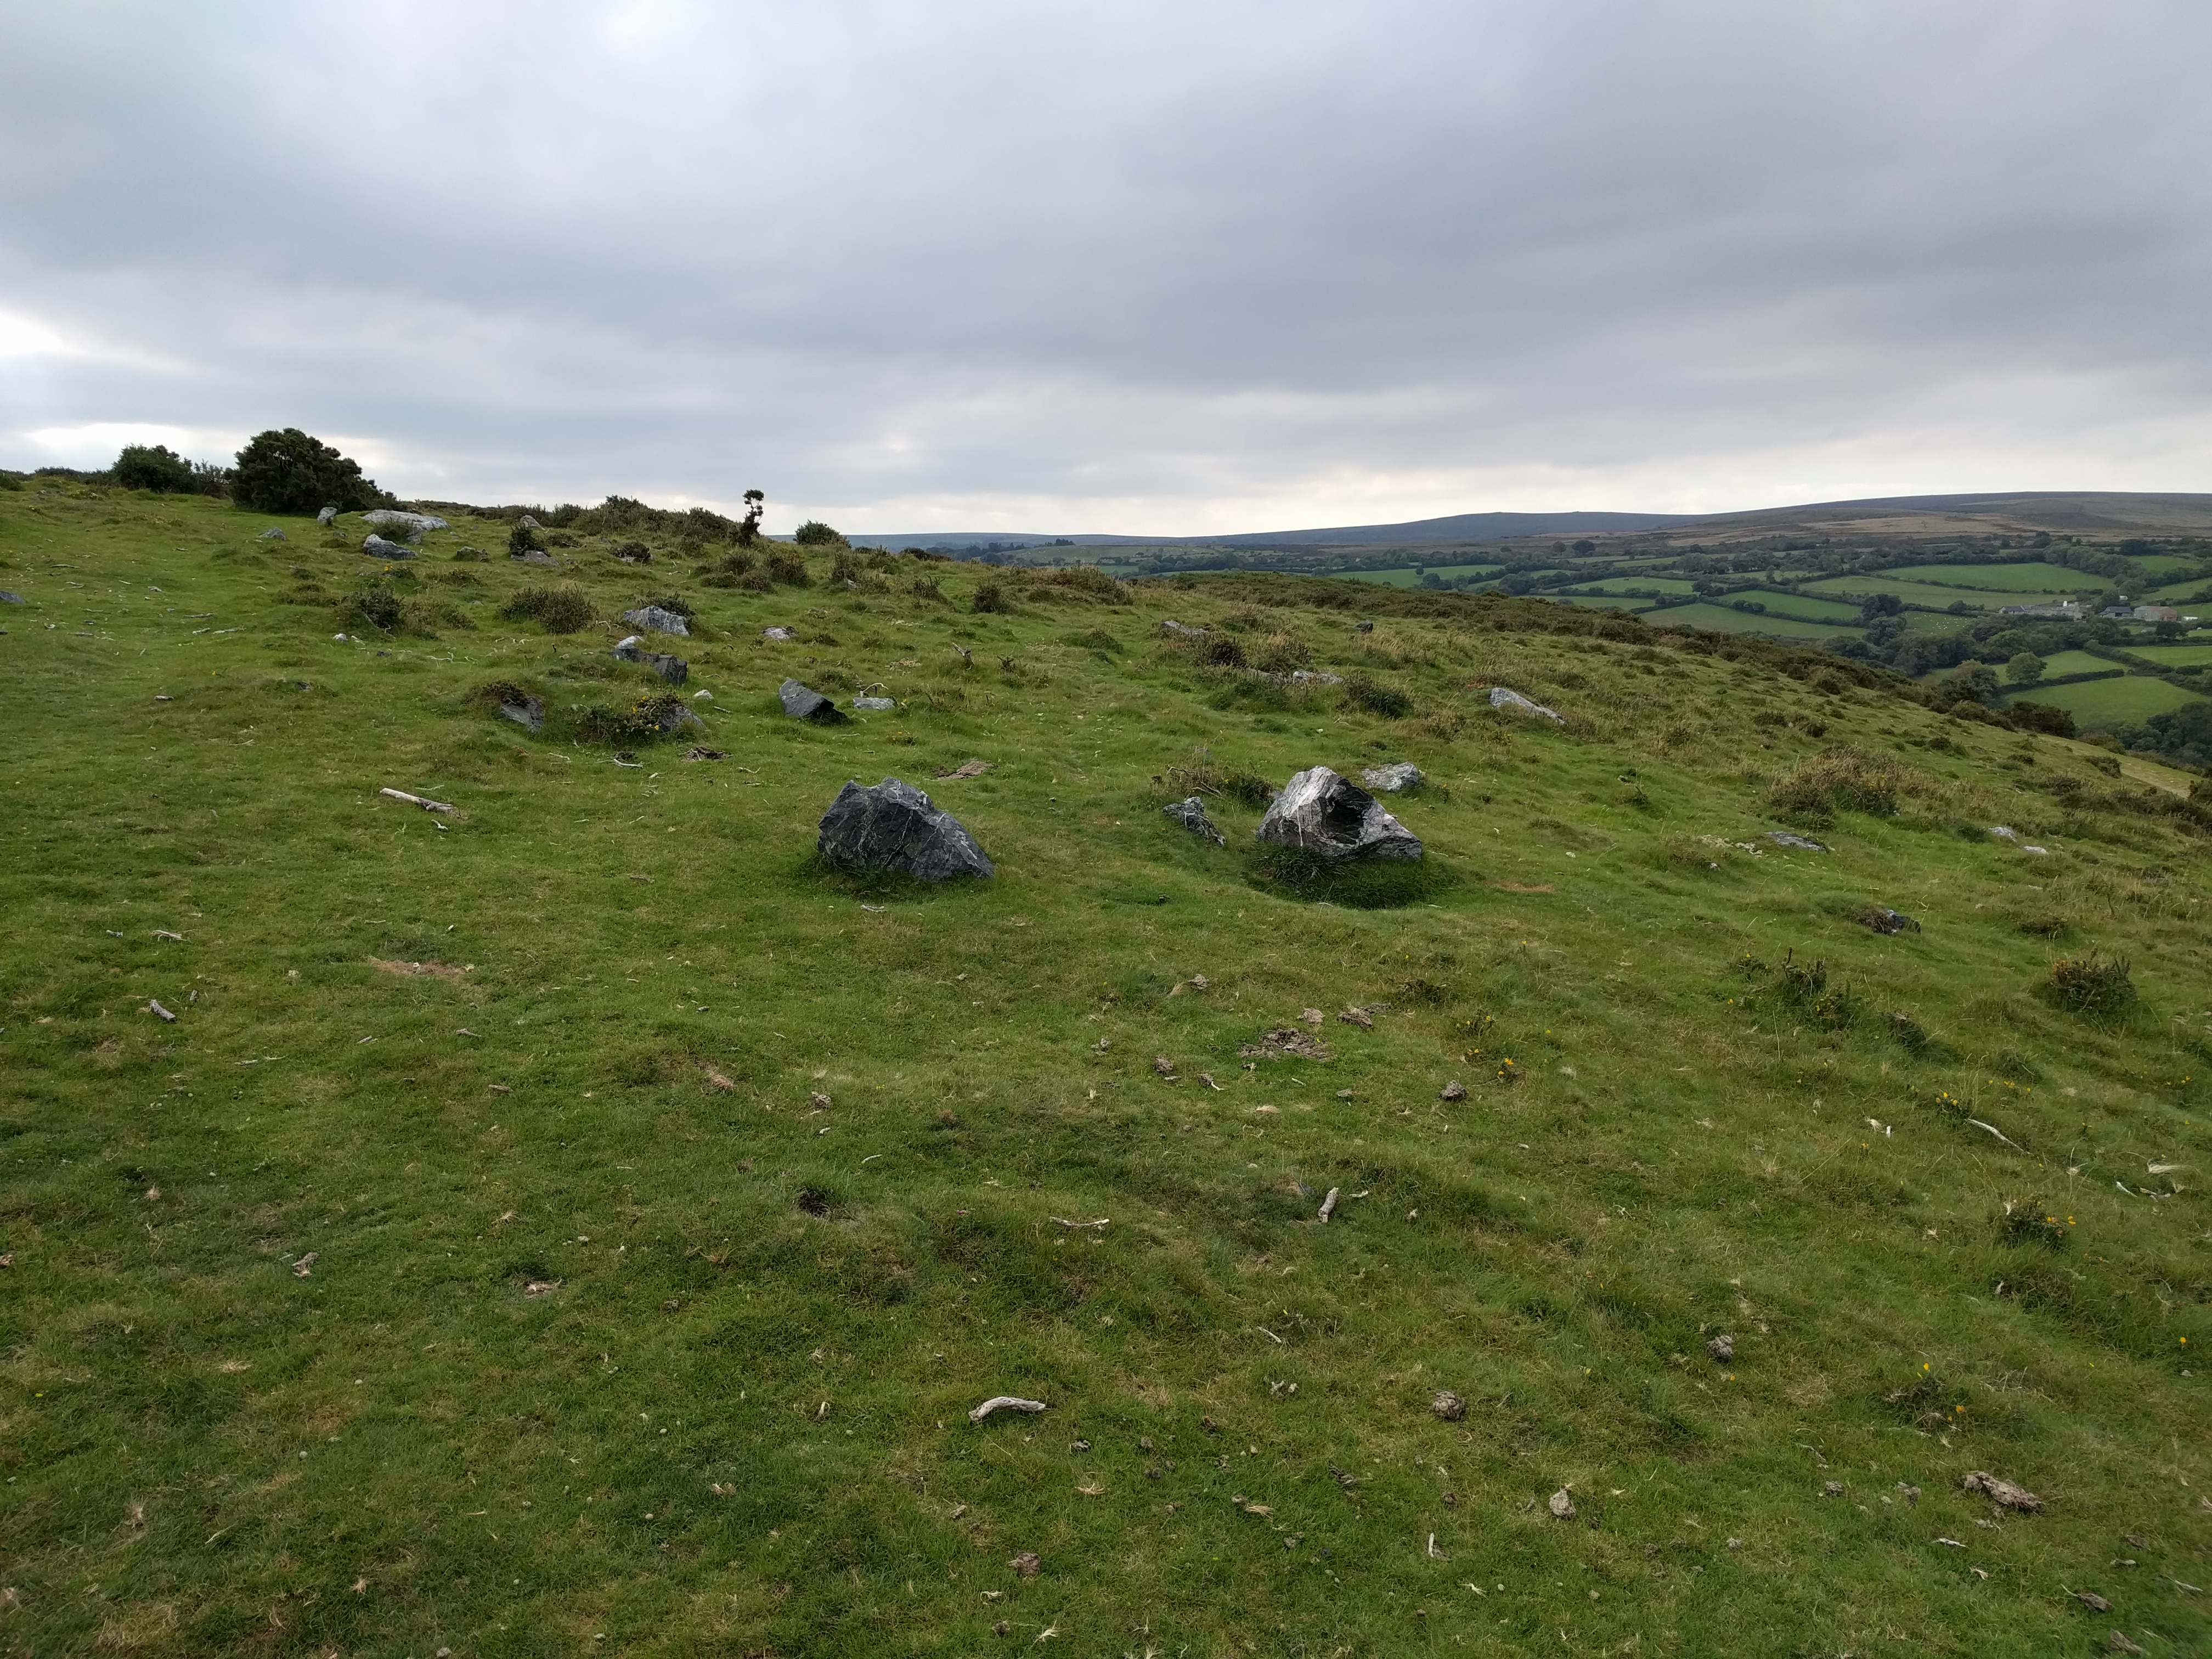 Remnants of Aish Tor #sh #twomoorsway